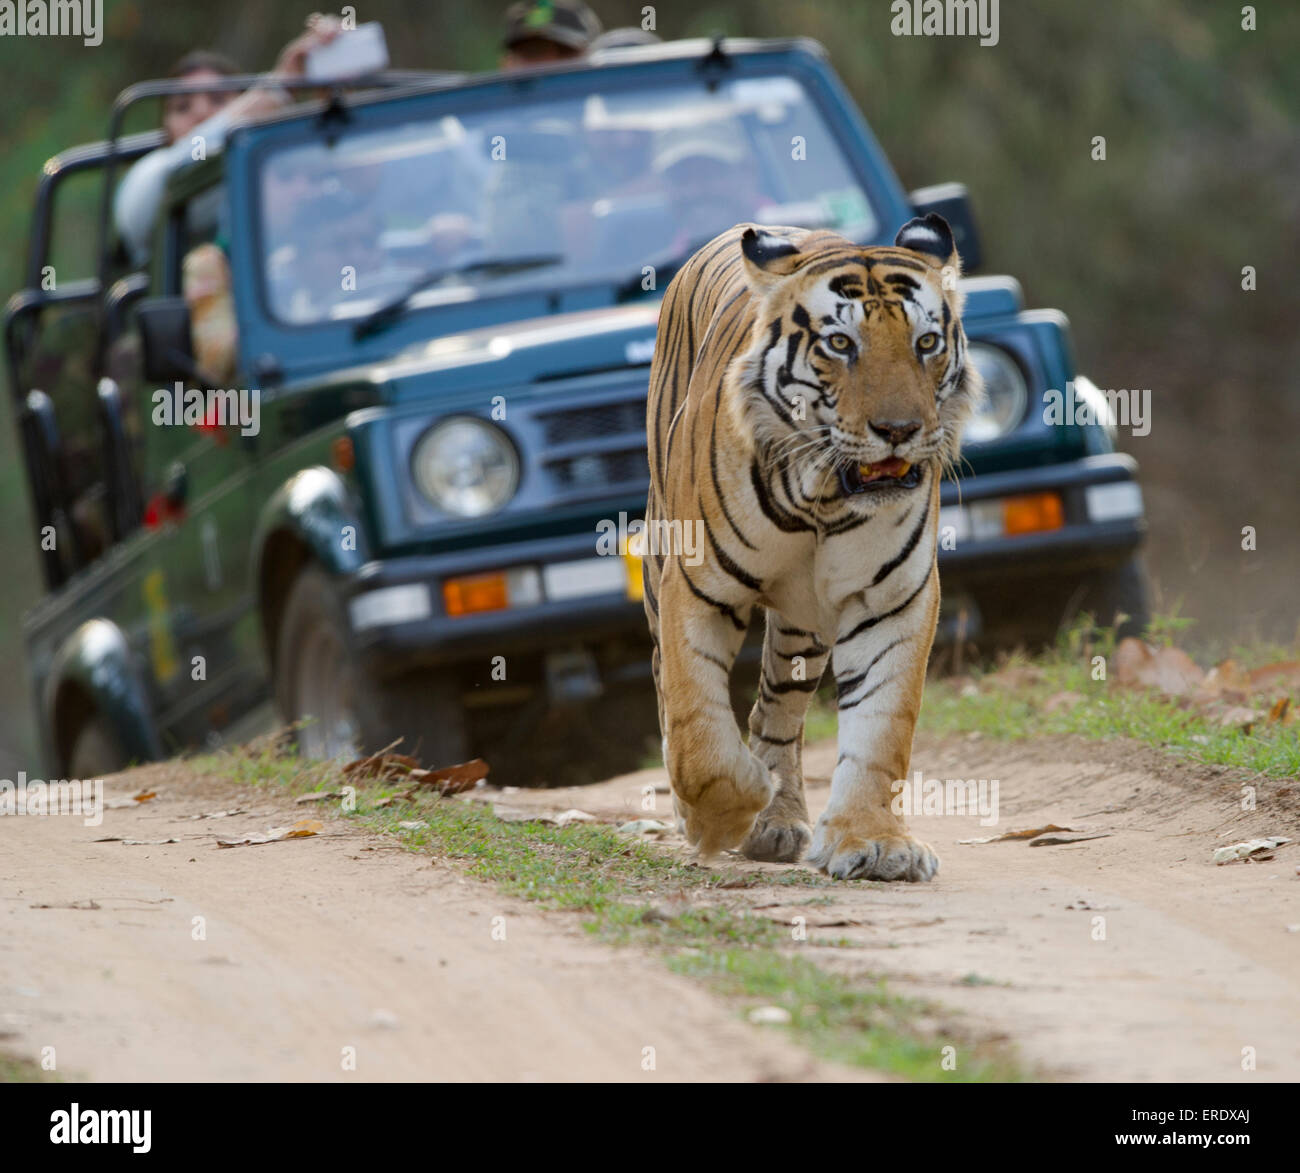 Bengal Tiger who's  name is Munna with the letter CAT on his forehead followed by a  jeep - Stock Image